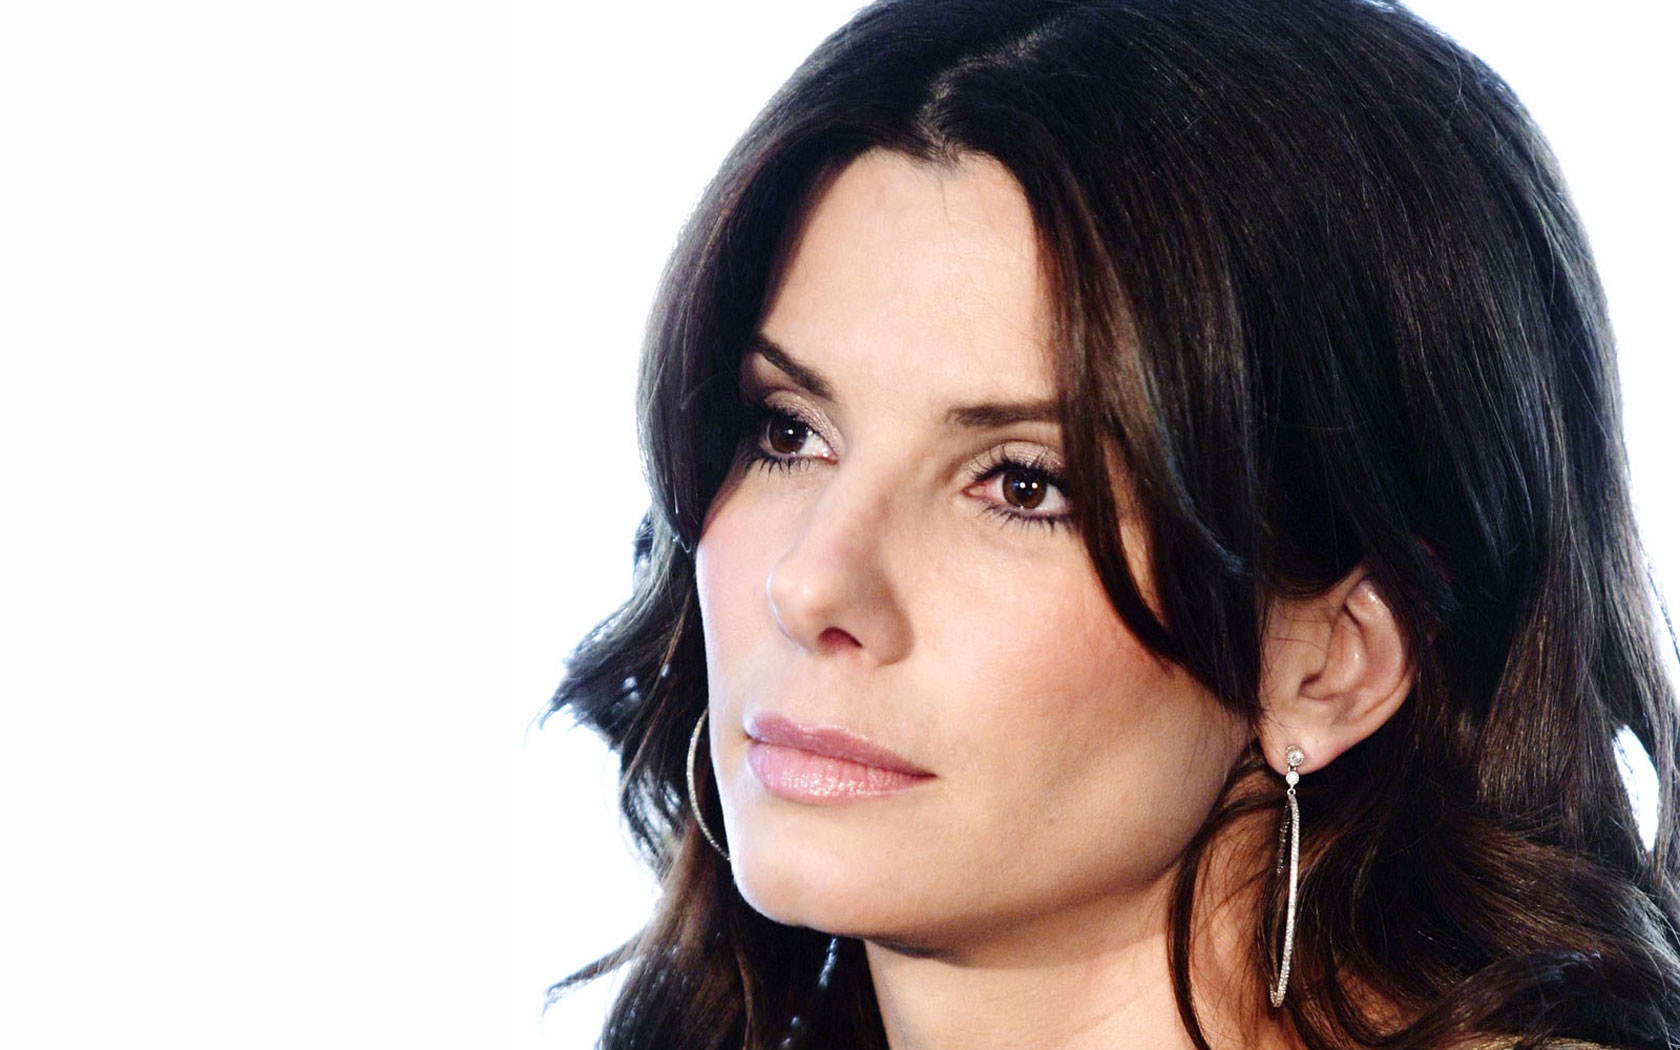 sandra-bullock-wallpapers-10